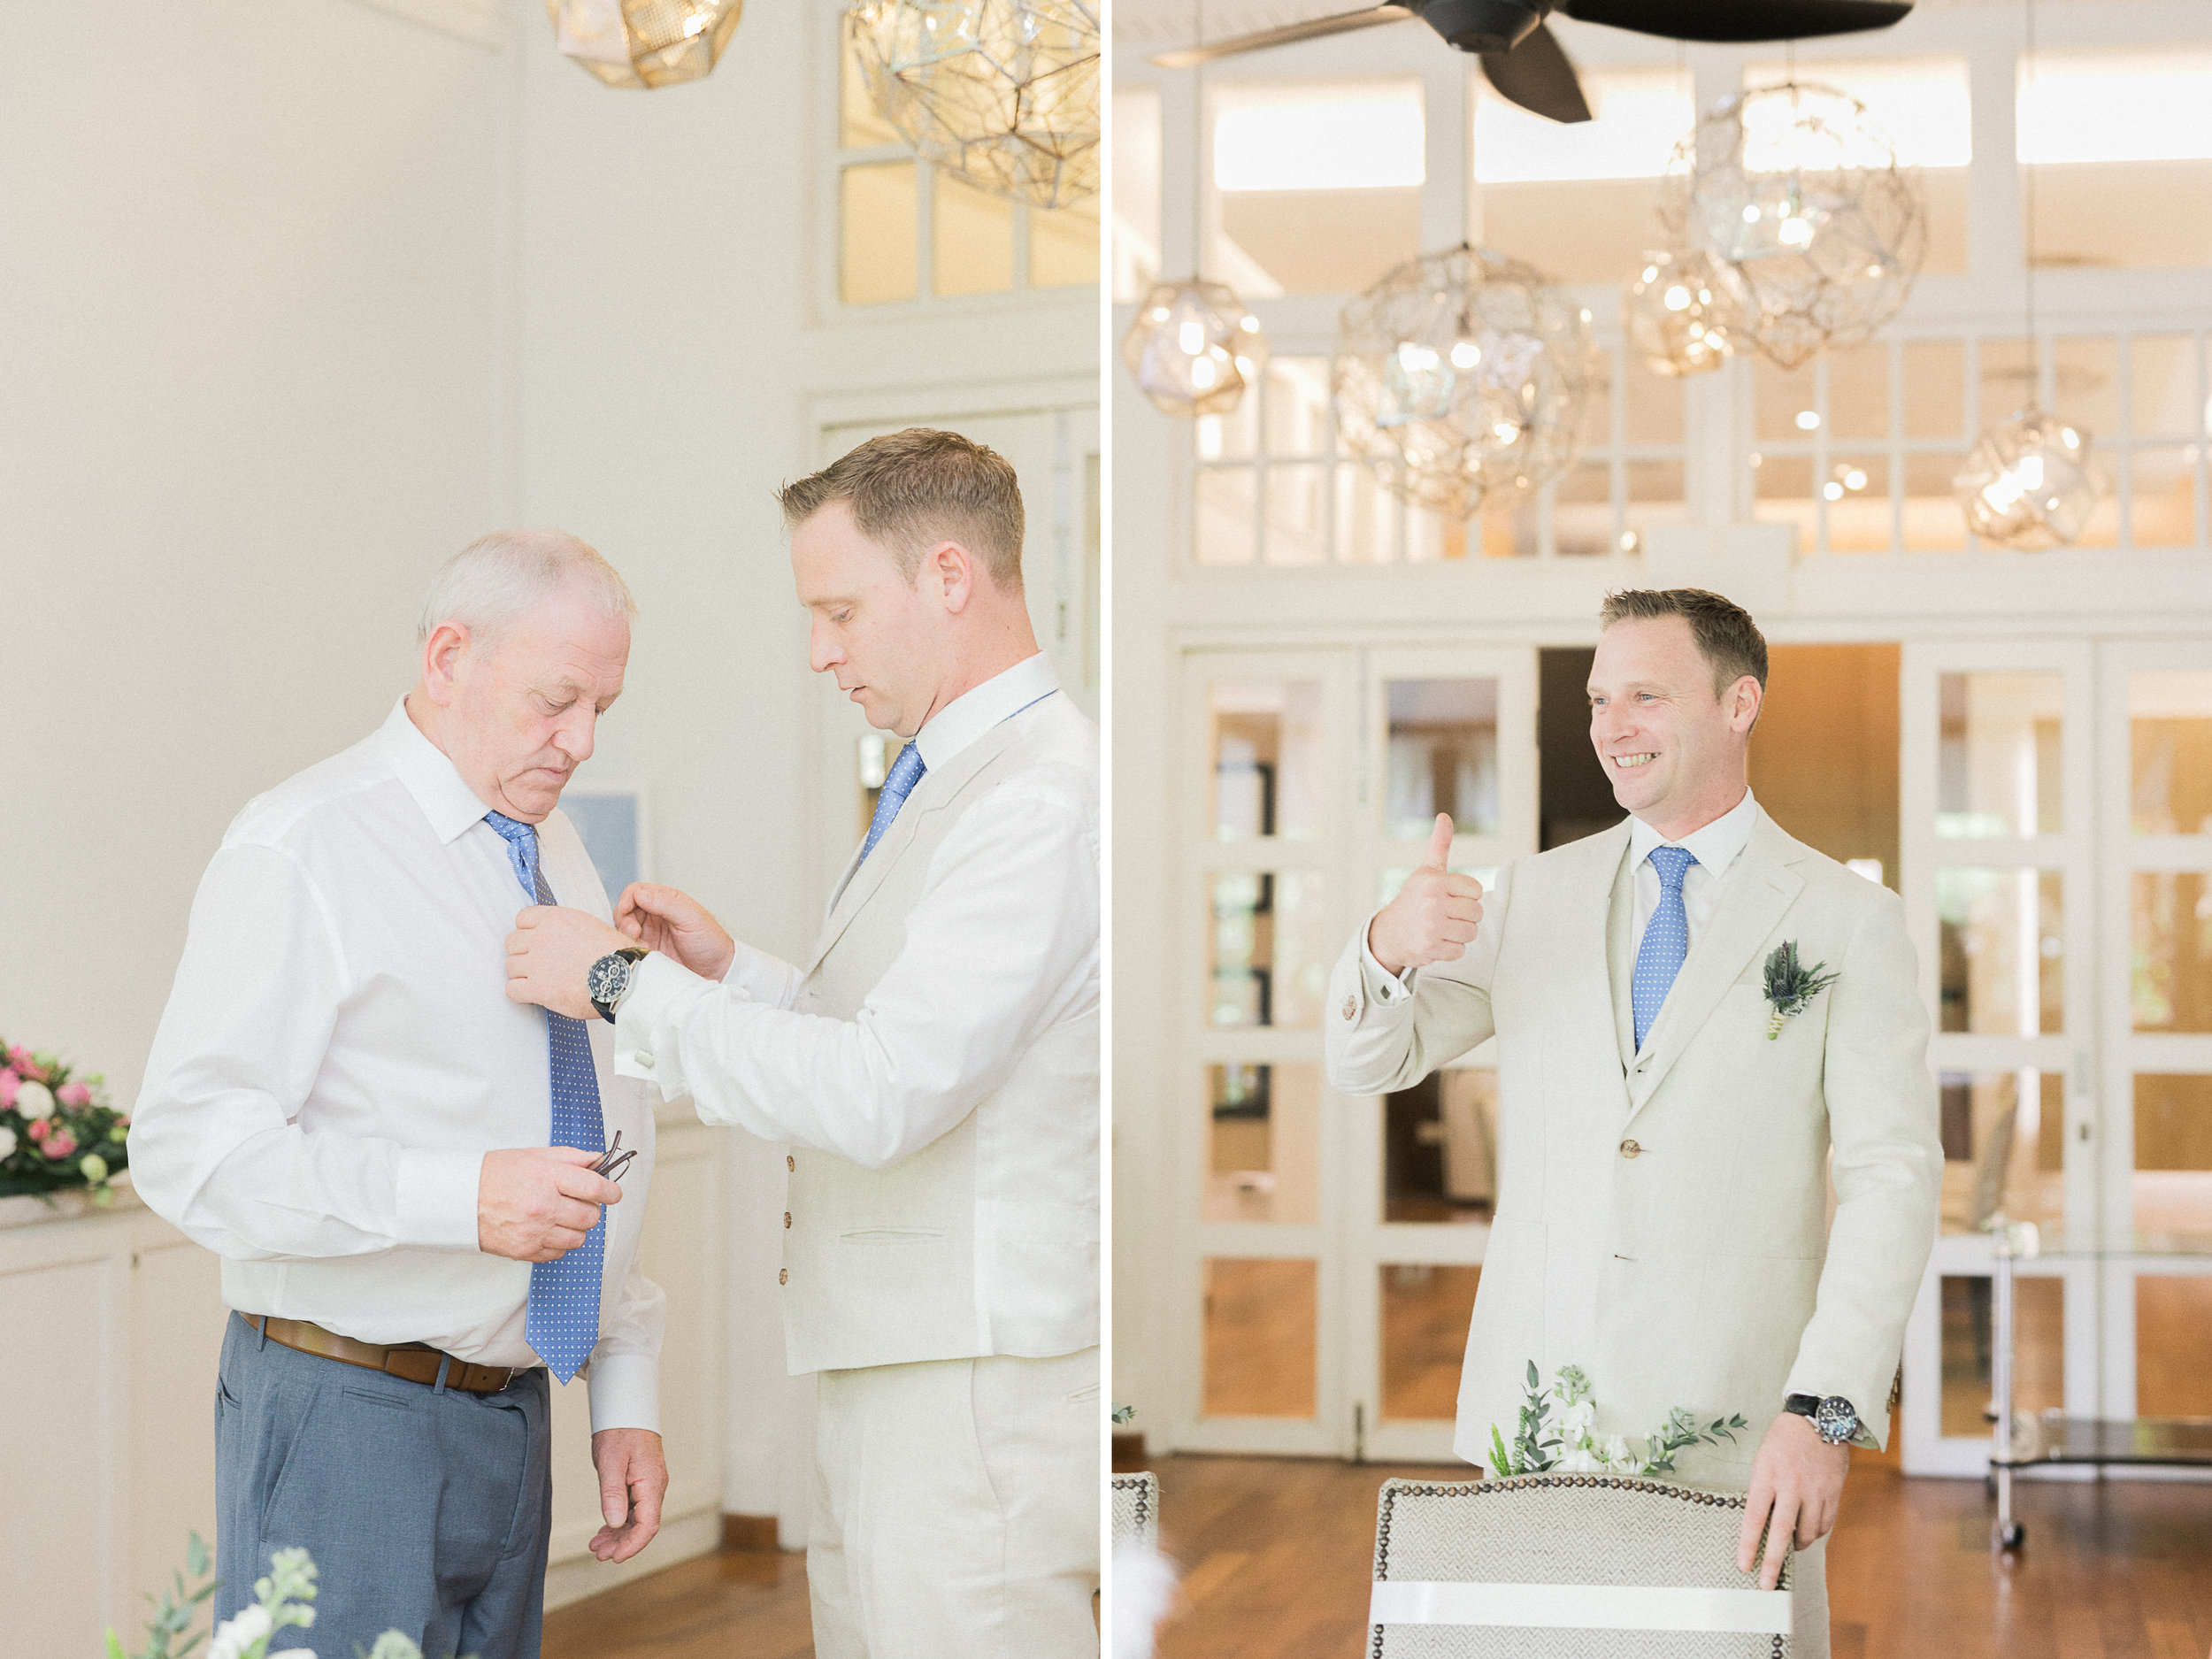 Chen Sands Photo Wedding Singapore Lou Declan - diptych - 4.jpg